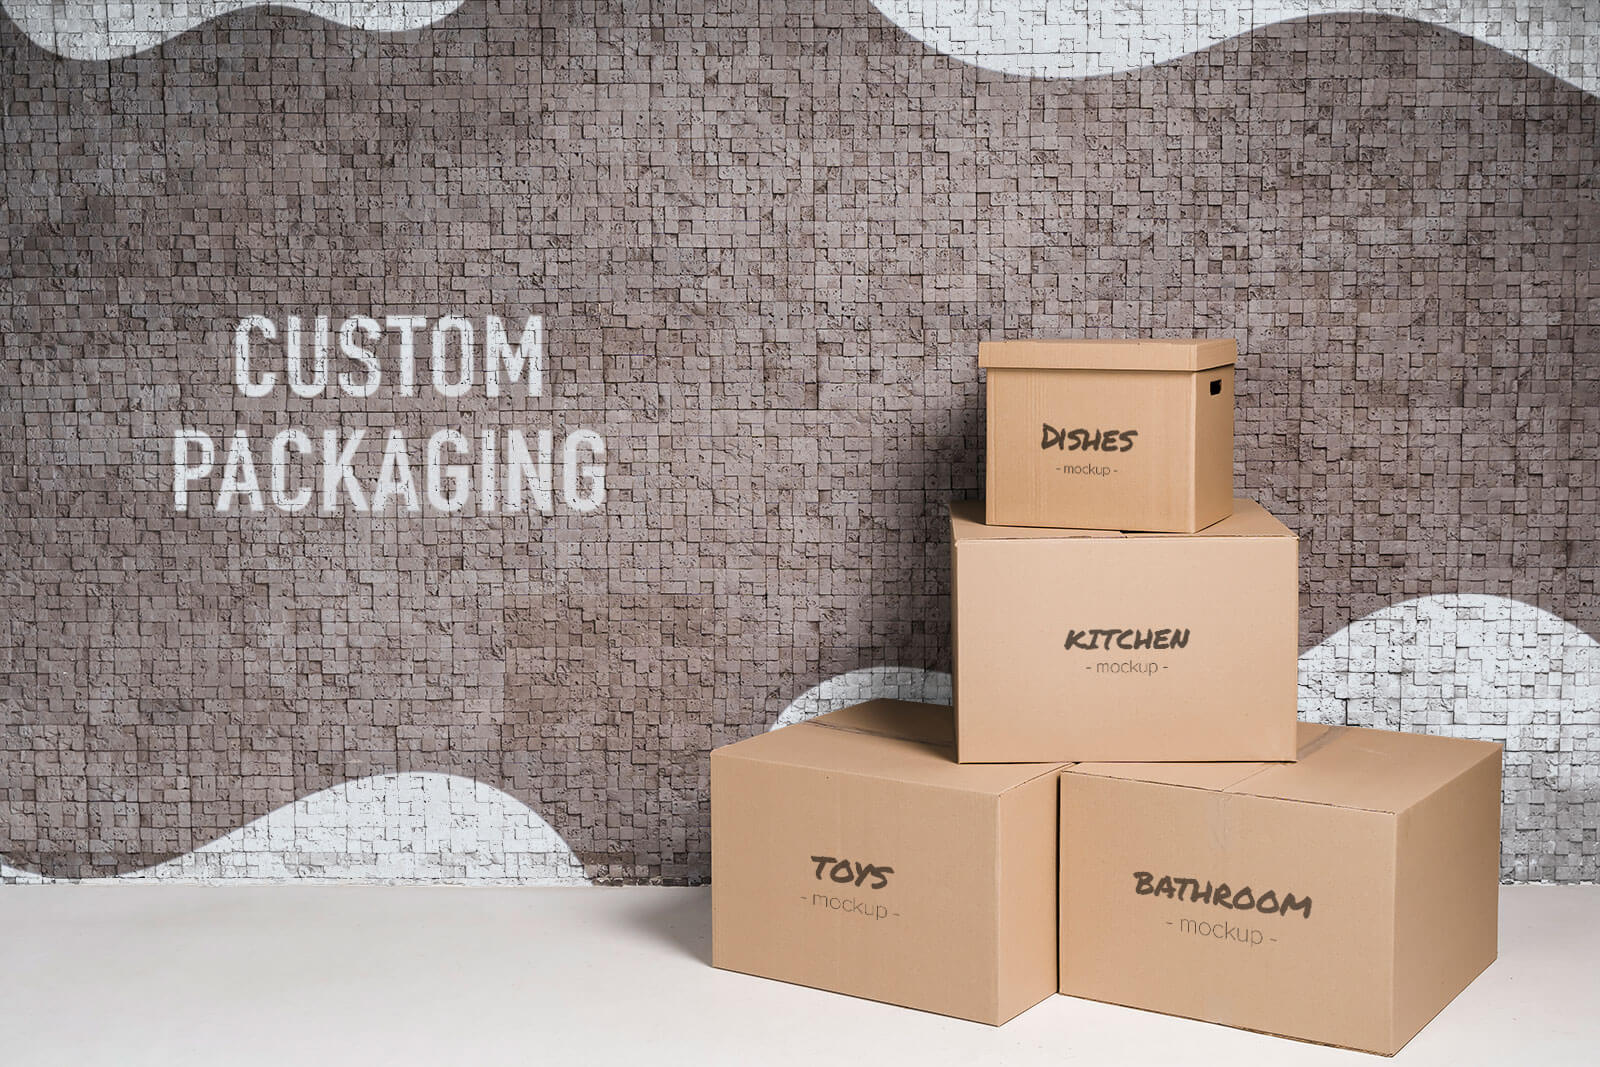 Market and Promote your Packaging Business Online